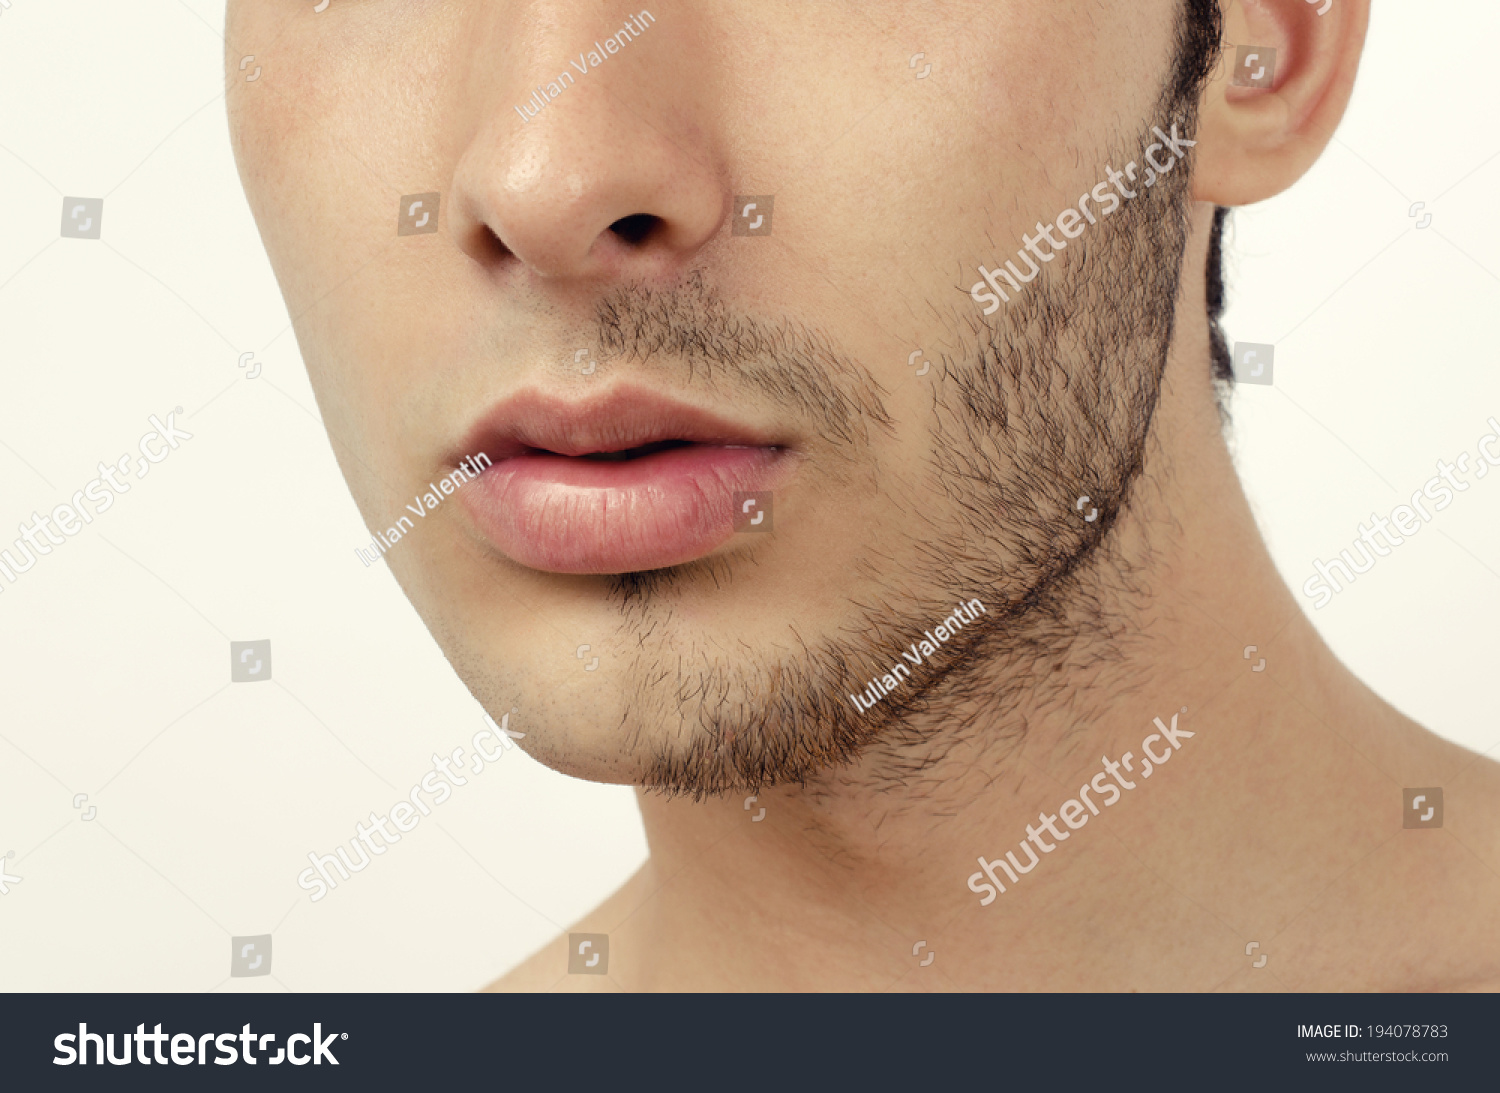 Portrait Of A Young Beautiful Man With Half Face Shaved Stock Photo Shutterstock